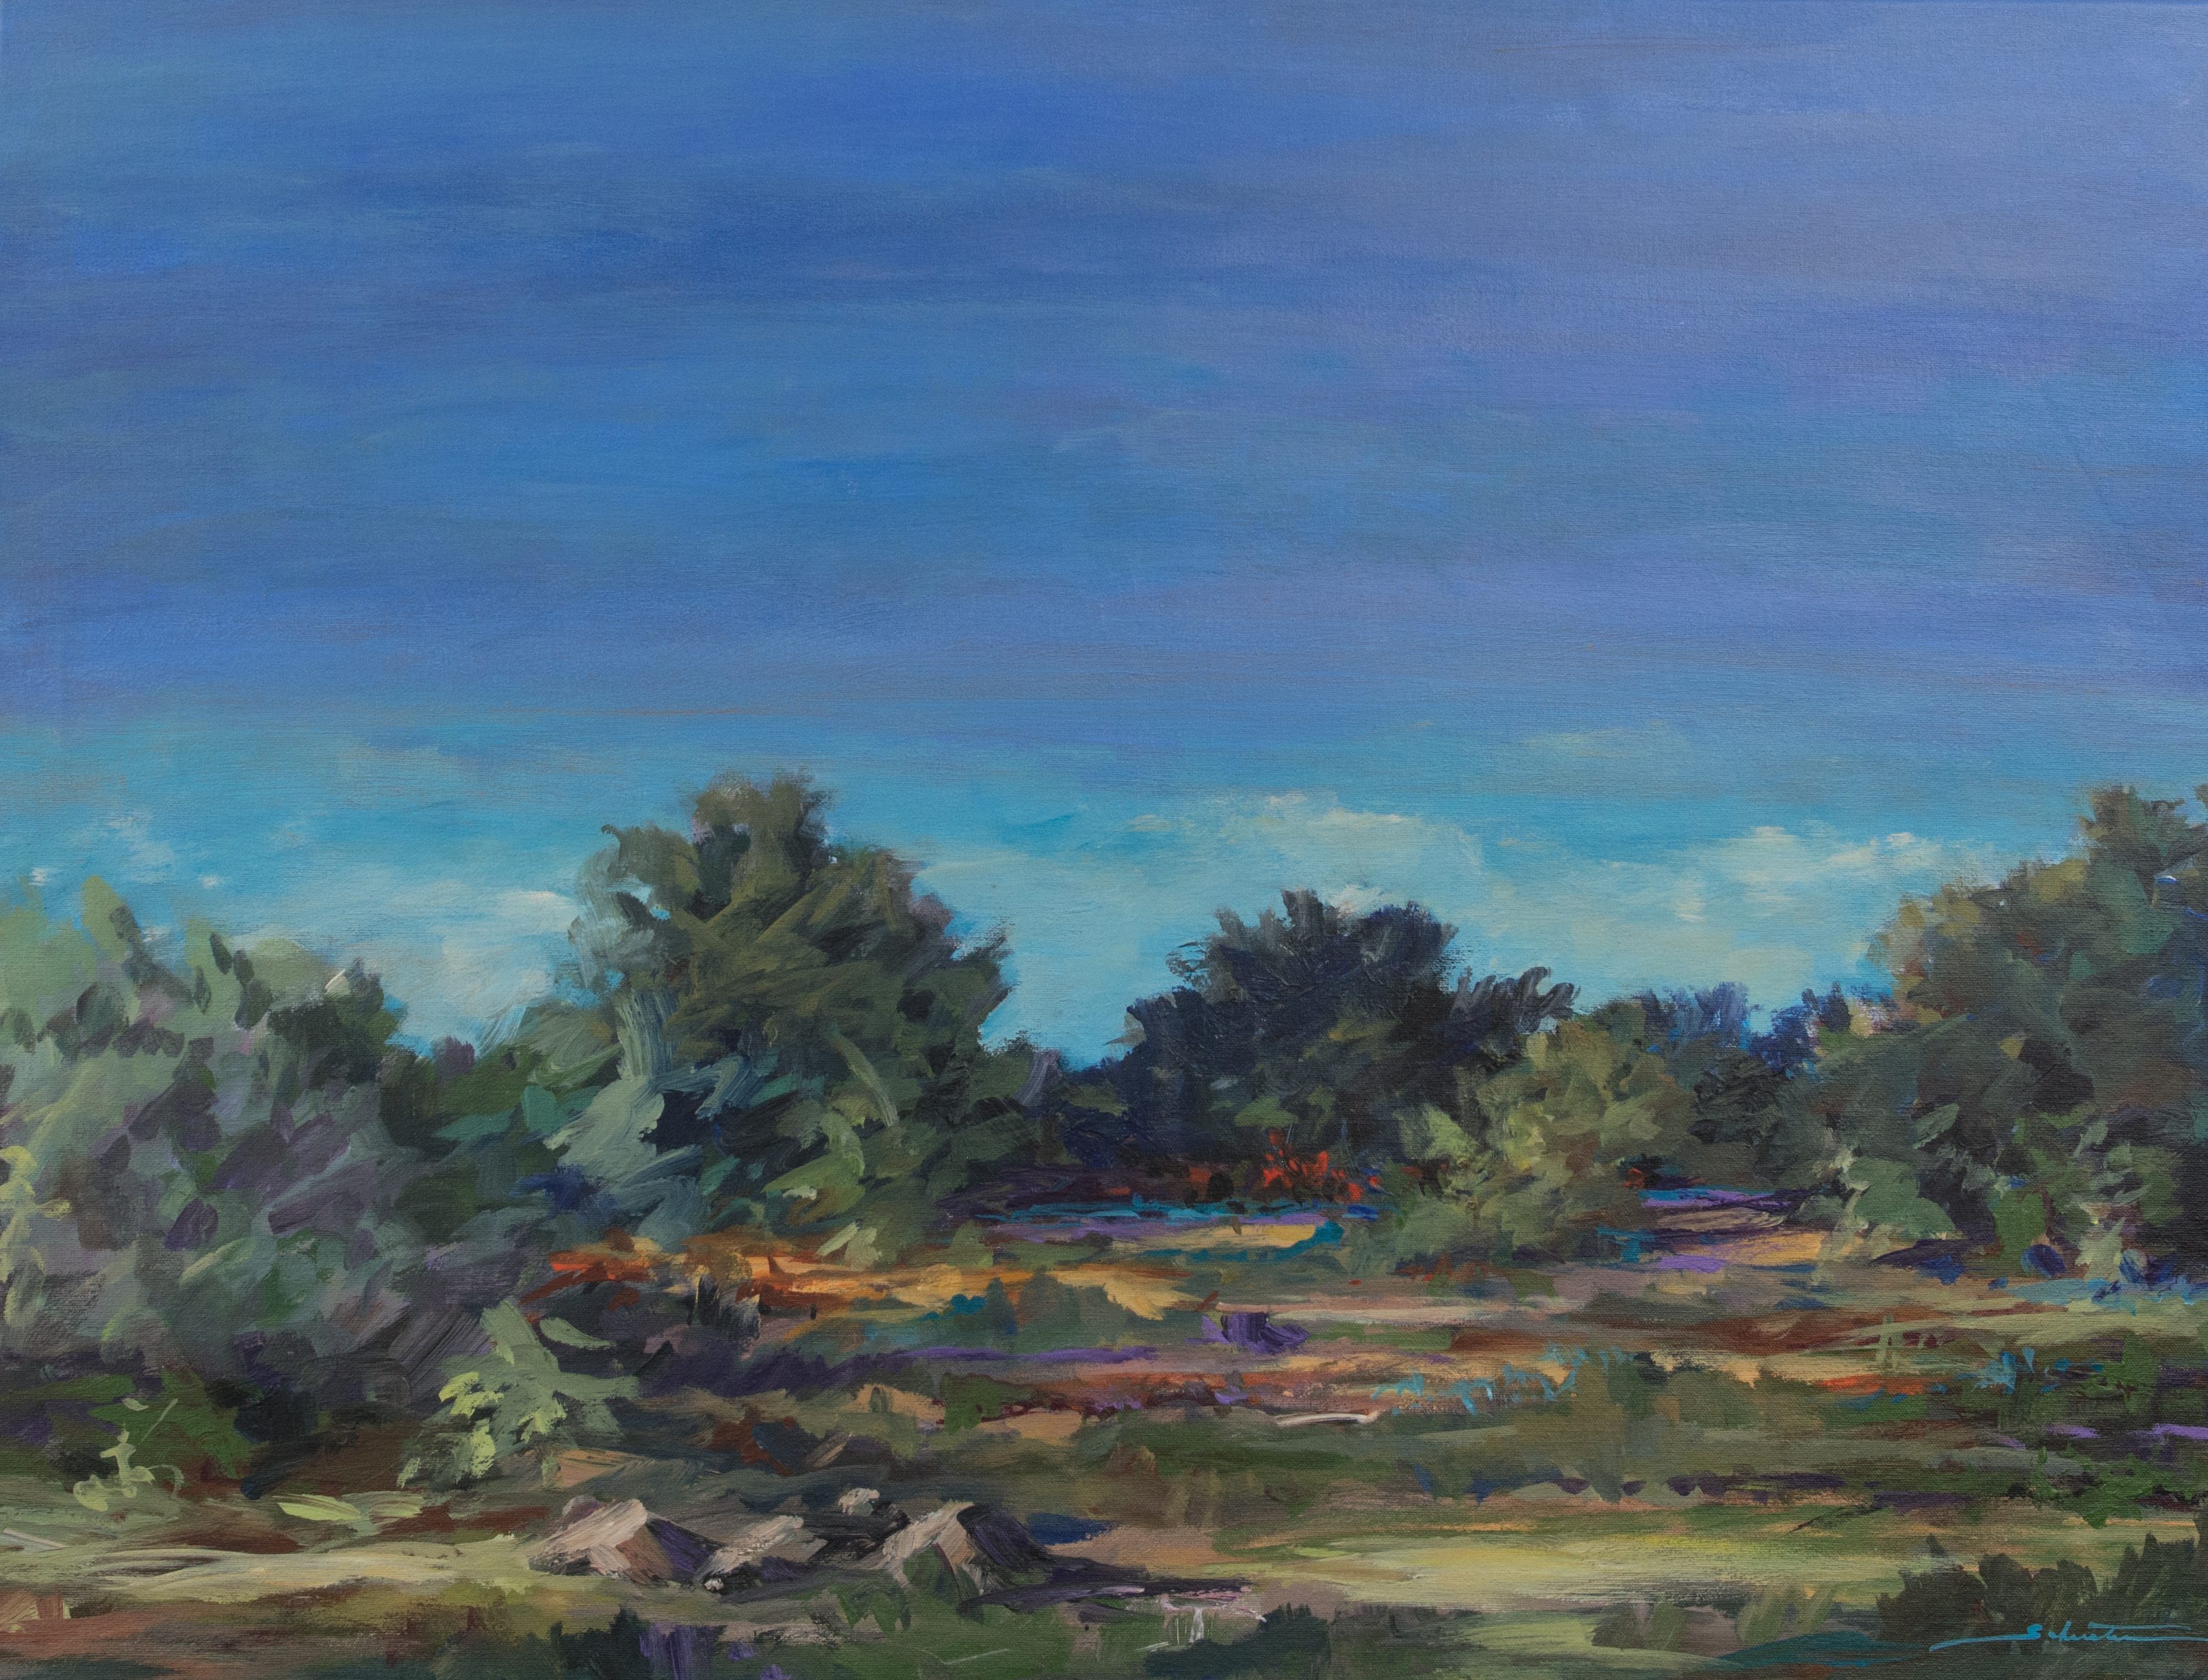 Painting of a landscape just before sunset